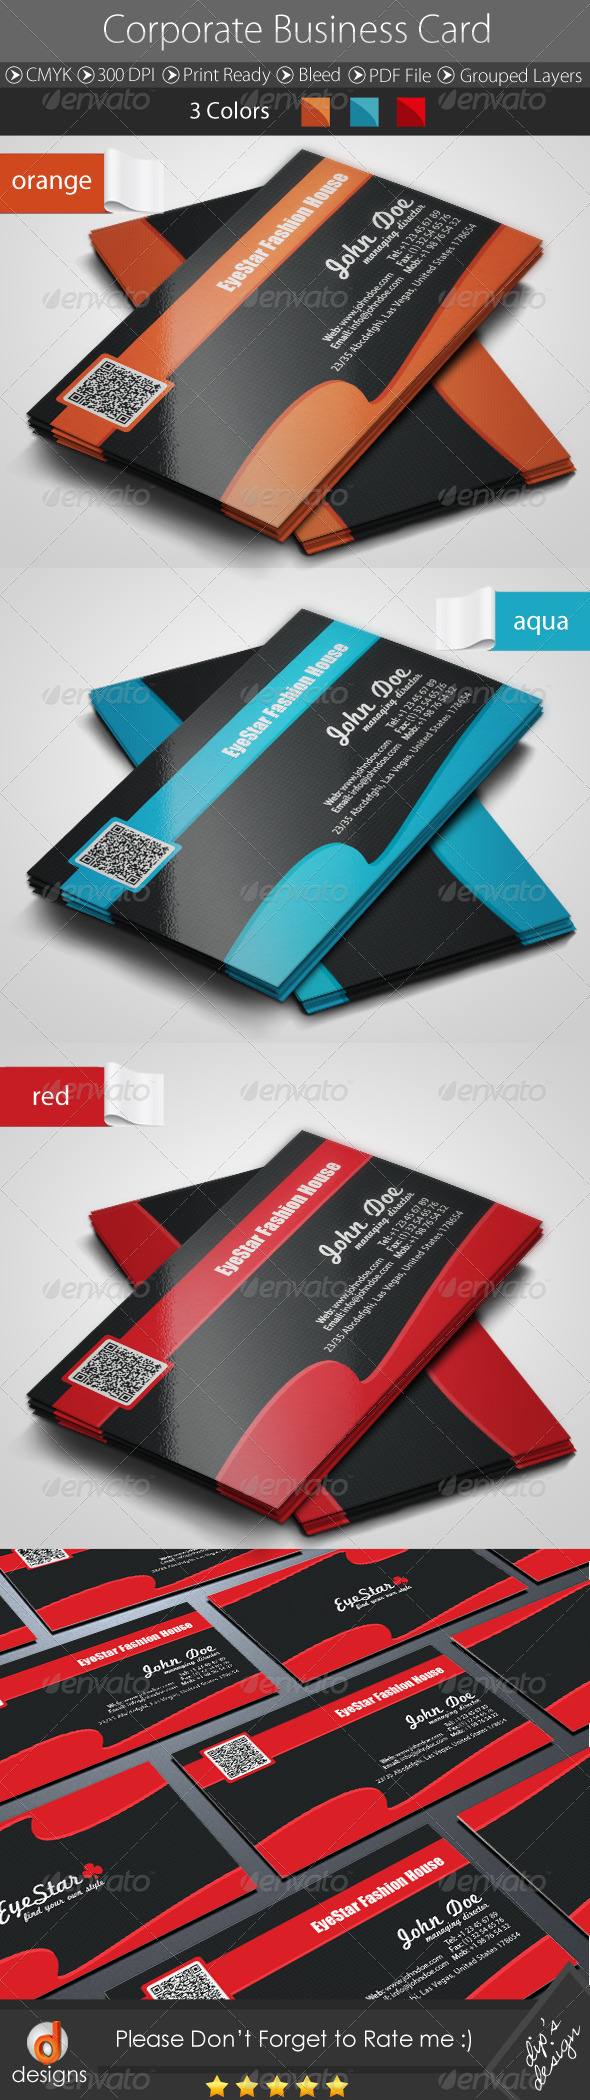 GraphicRiver Corporate Business Card 4657995